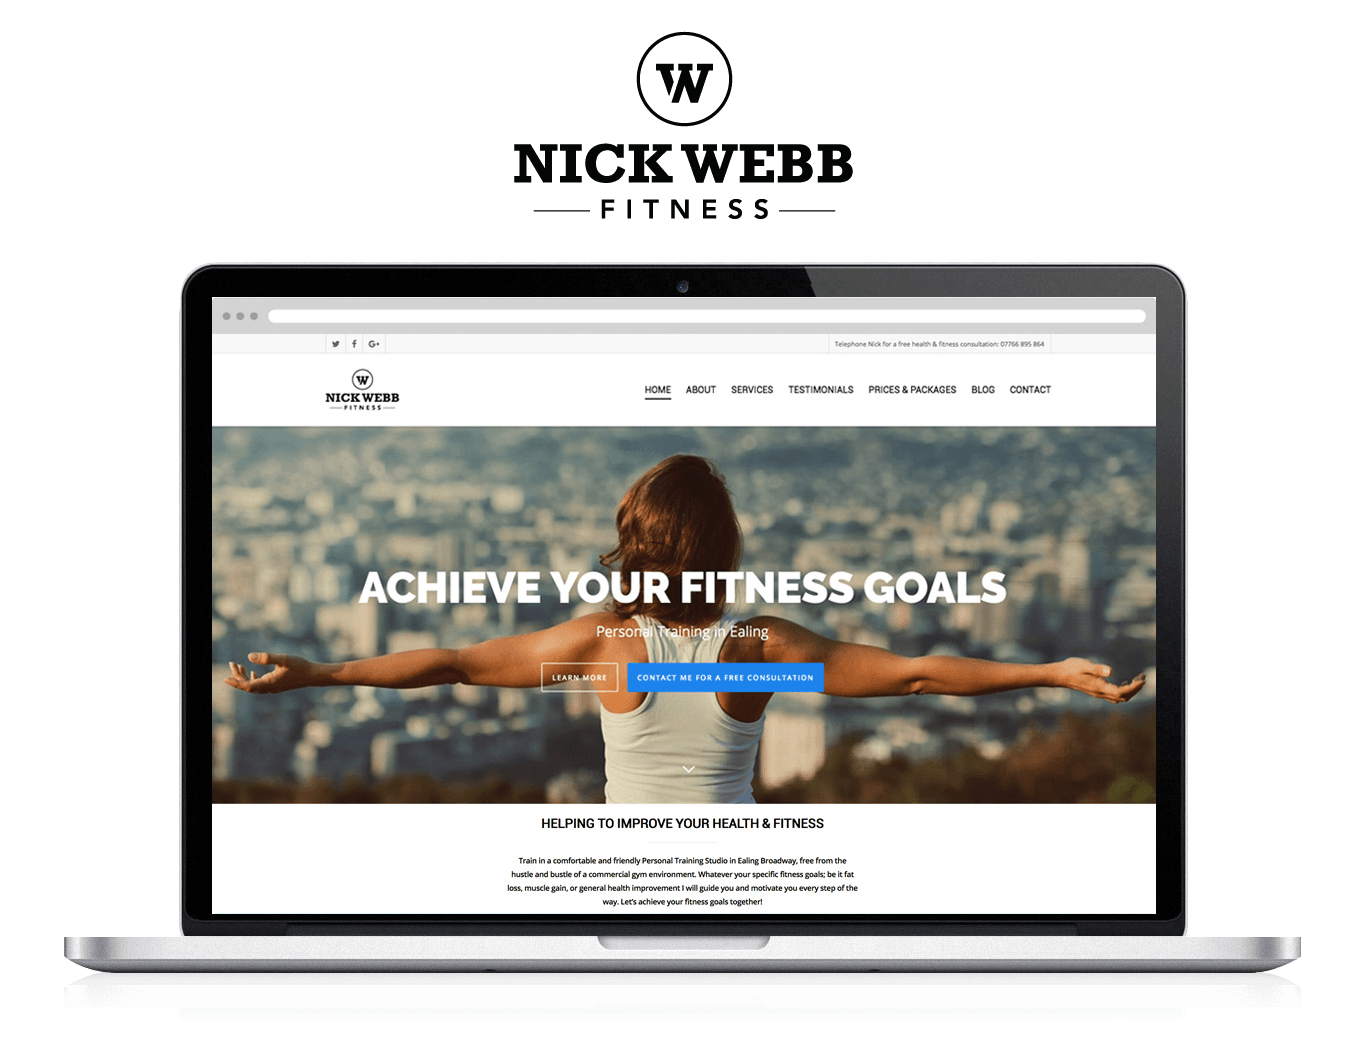 Nick Webb Fitness